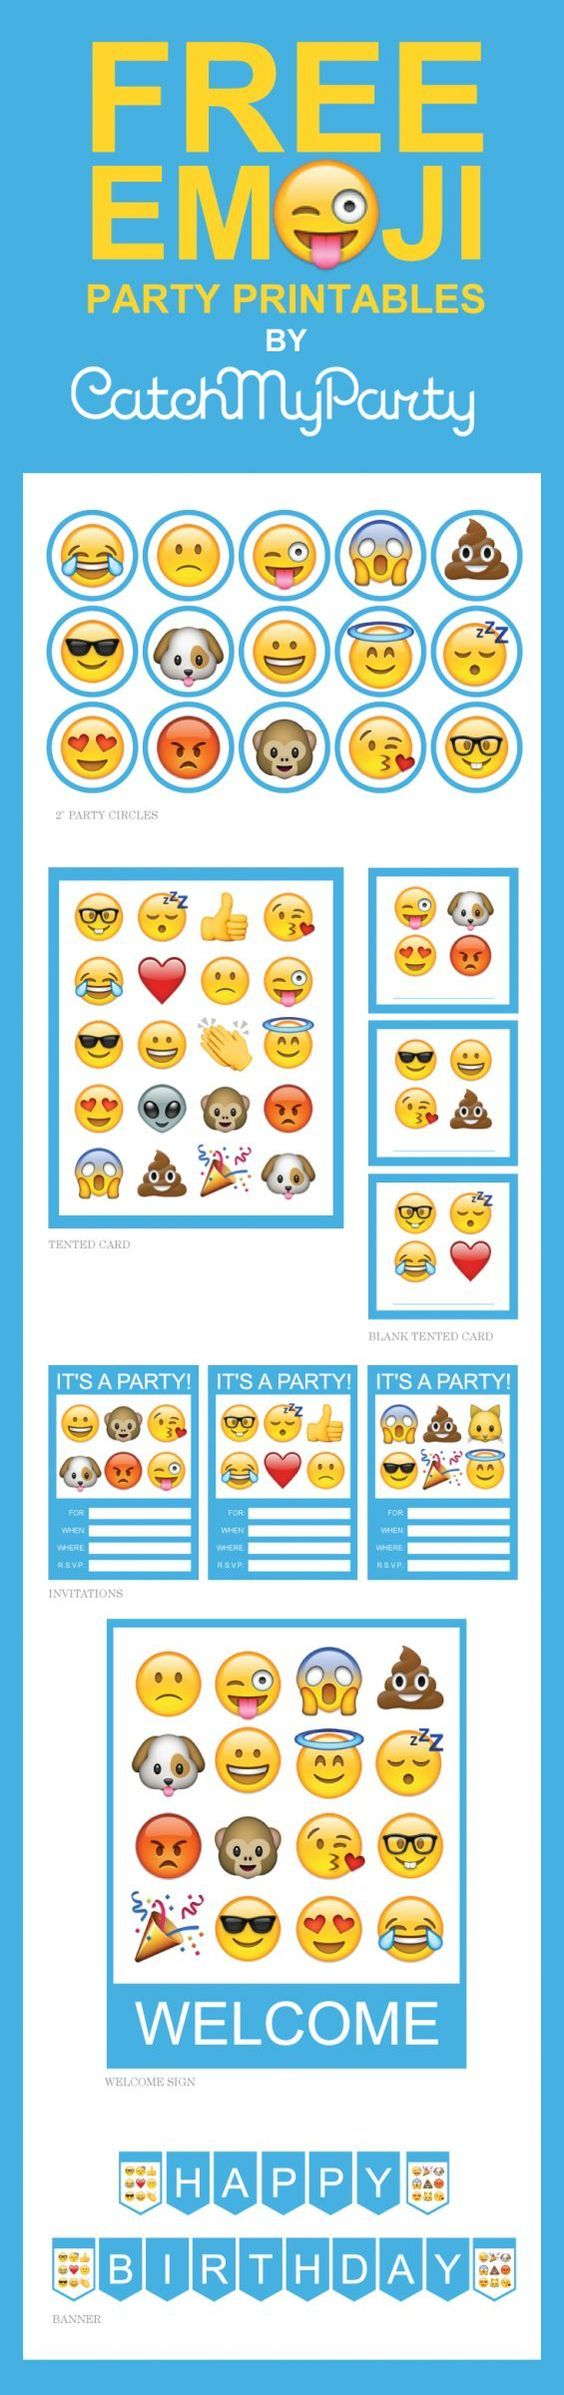 """Free Emoji Party Printables including invitations, cupcake toppers, a """"Happy Birthday"""" banner, a party welcome sign, and tented cards. Download for free! 